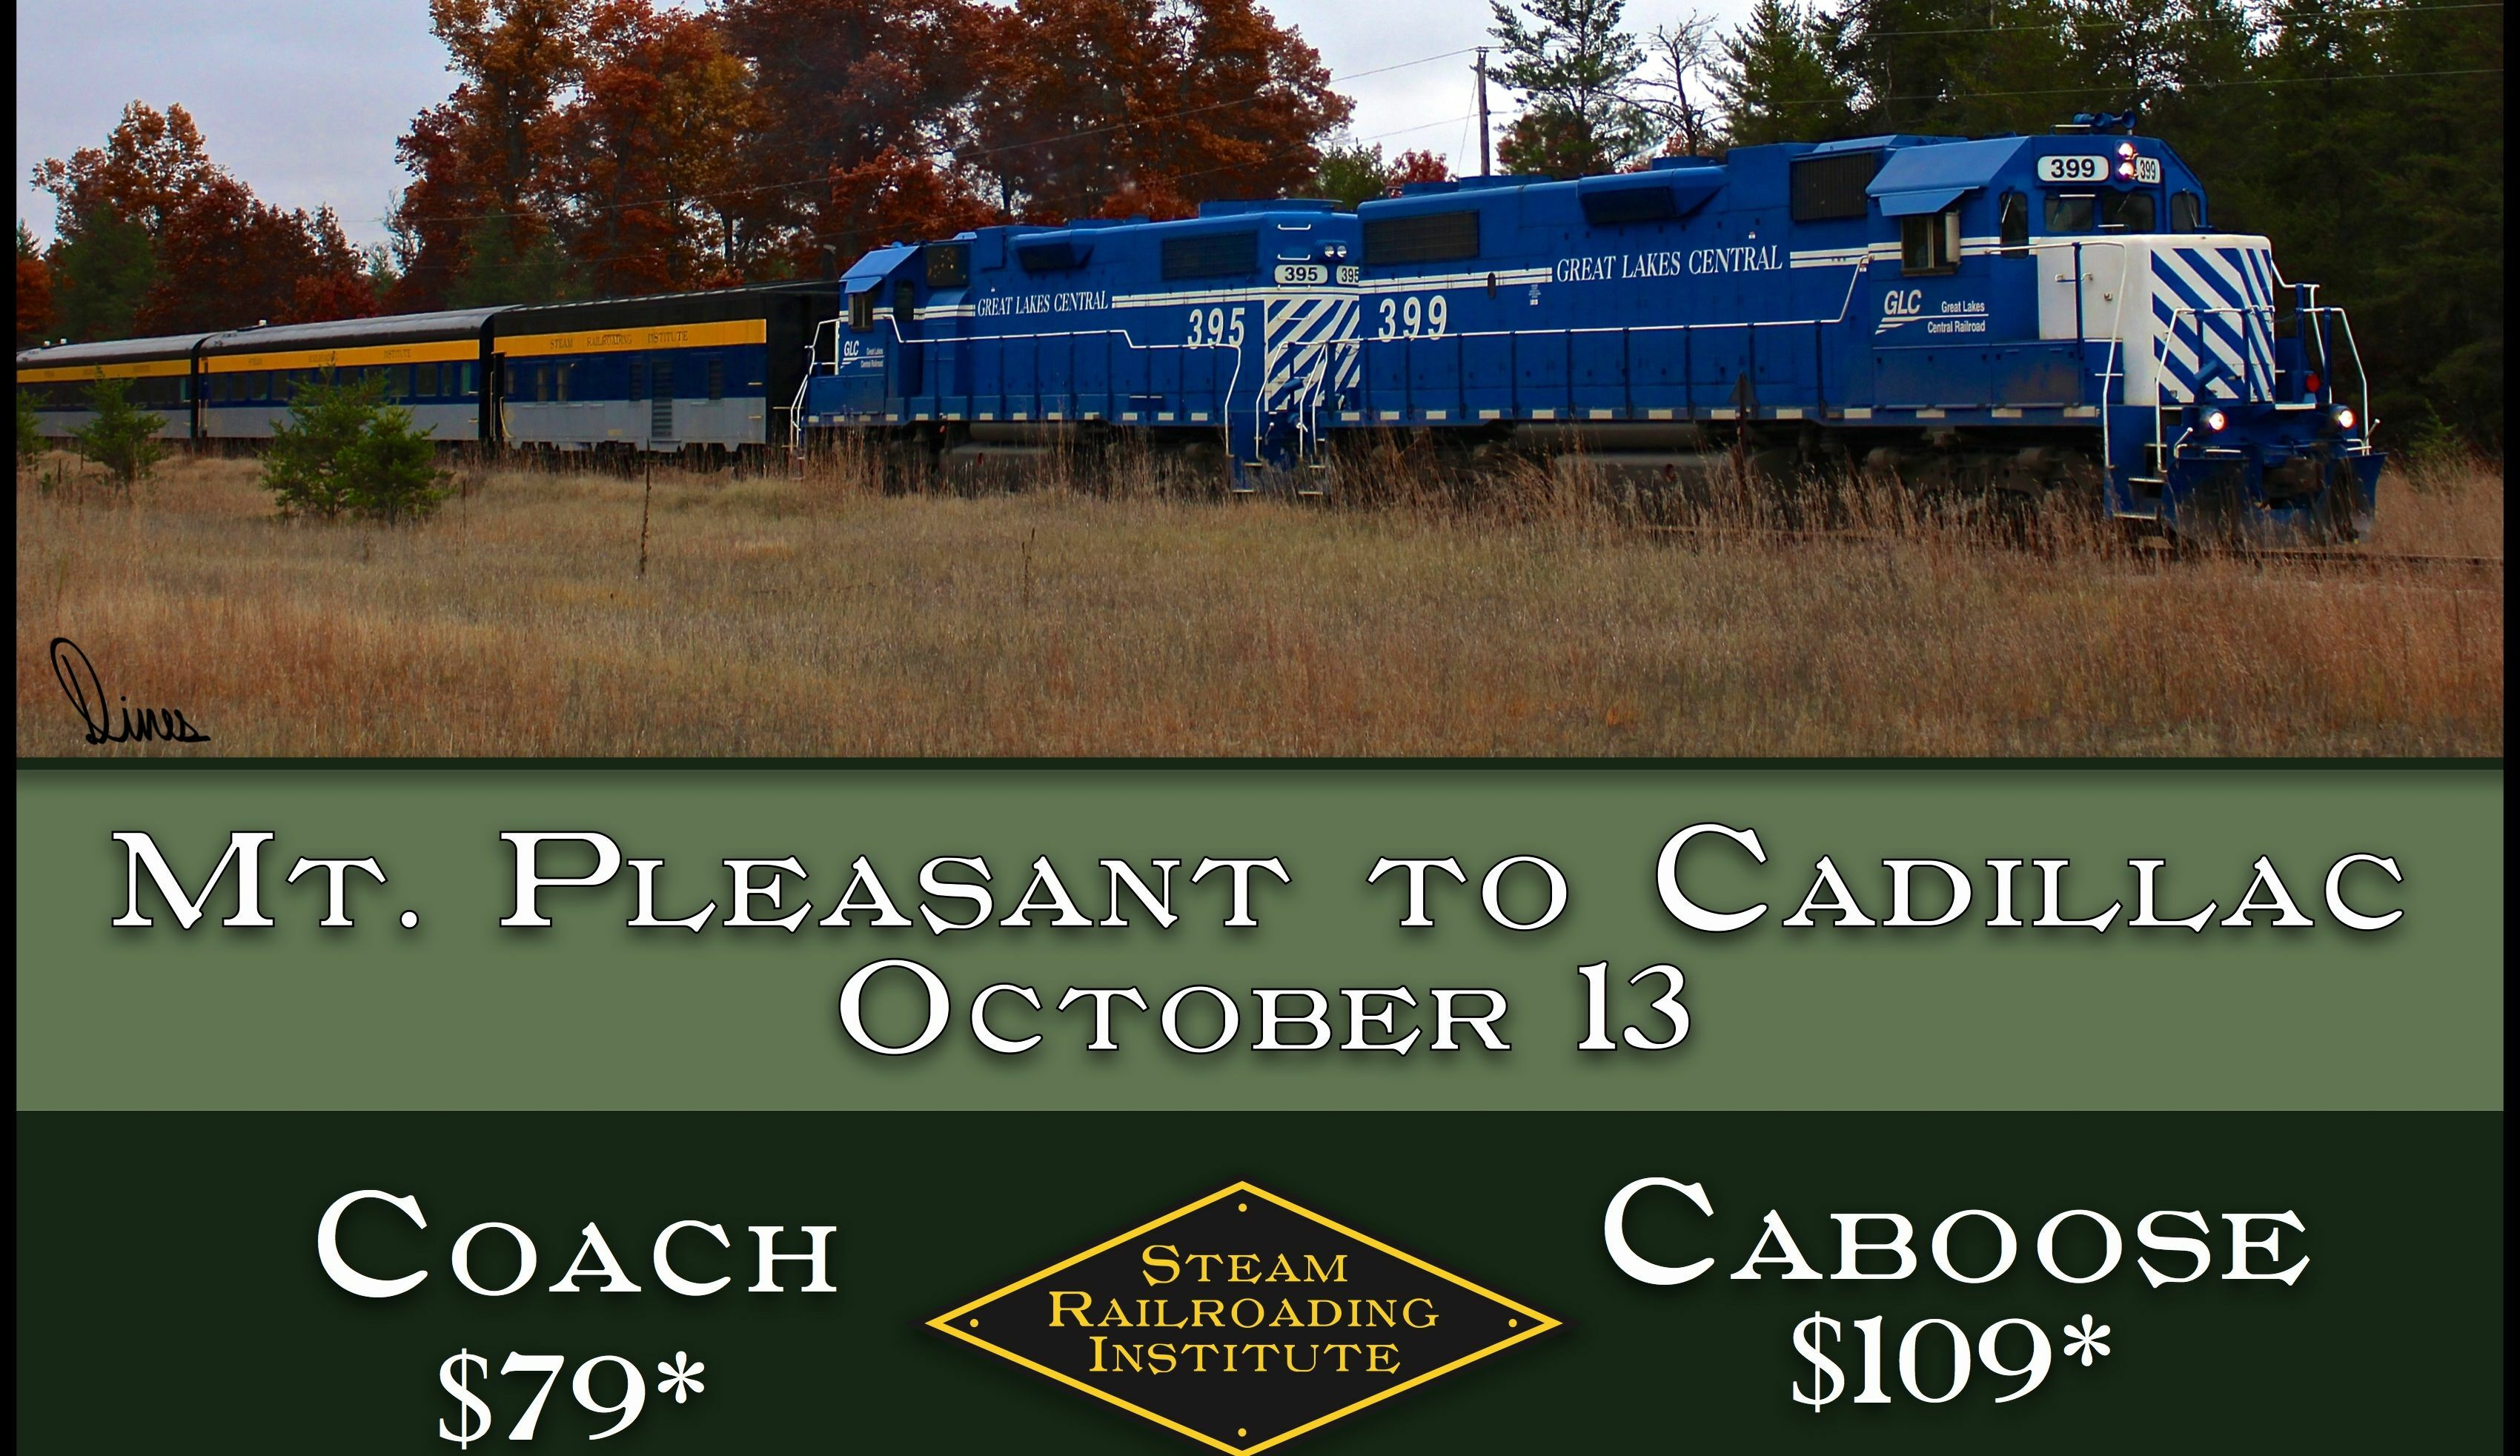 Cadillac Countryside Fall Color Train Excursion